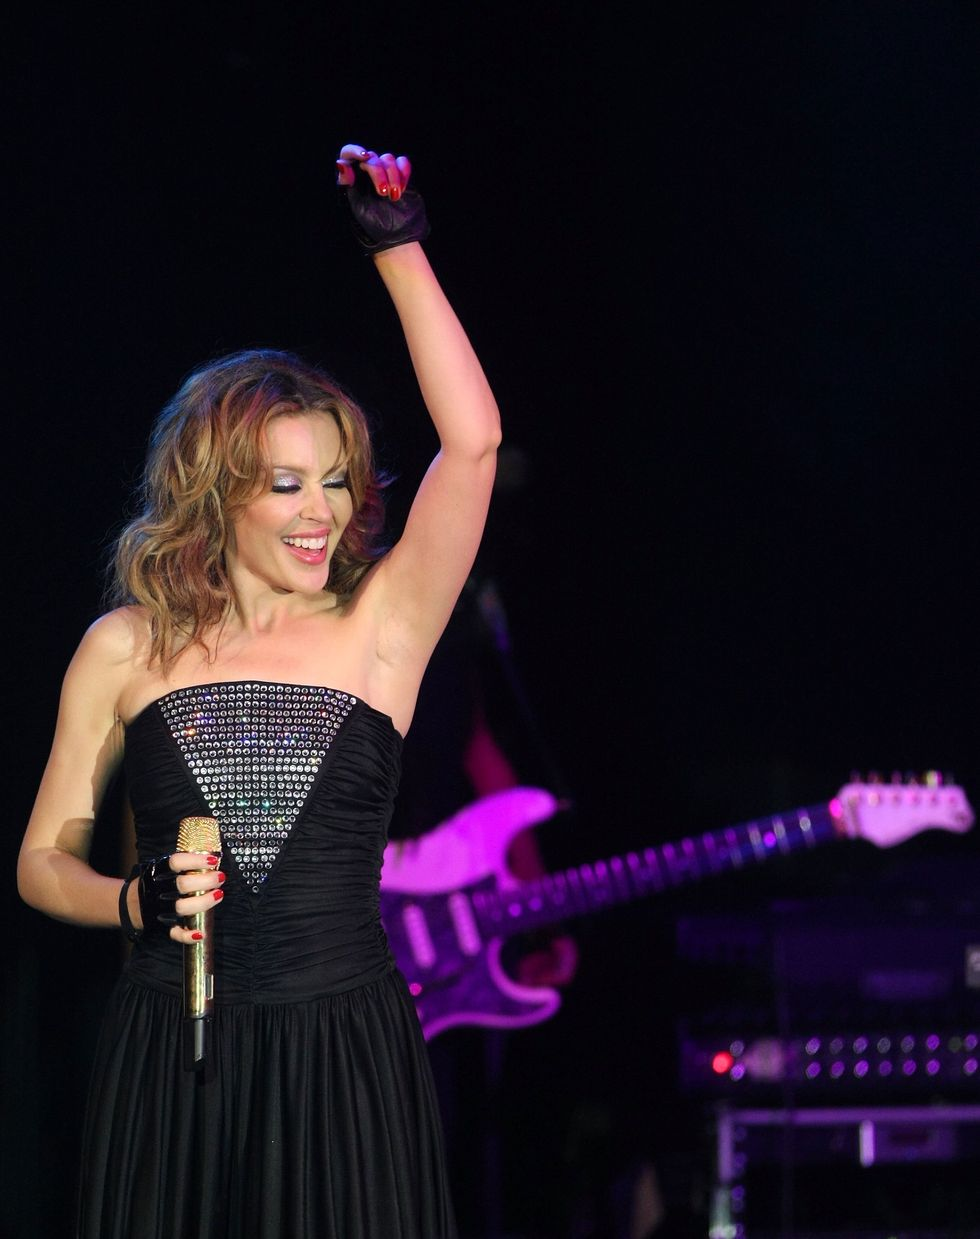 kylie-minogue-miracle-africa-international-foundation-charity-in-cannes-01